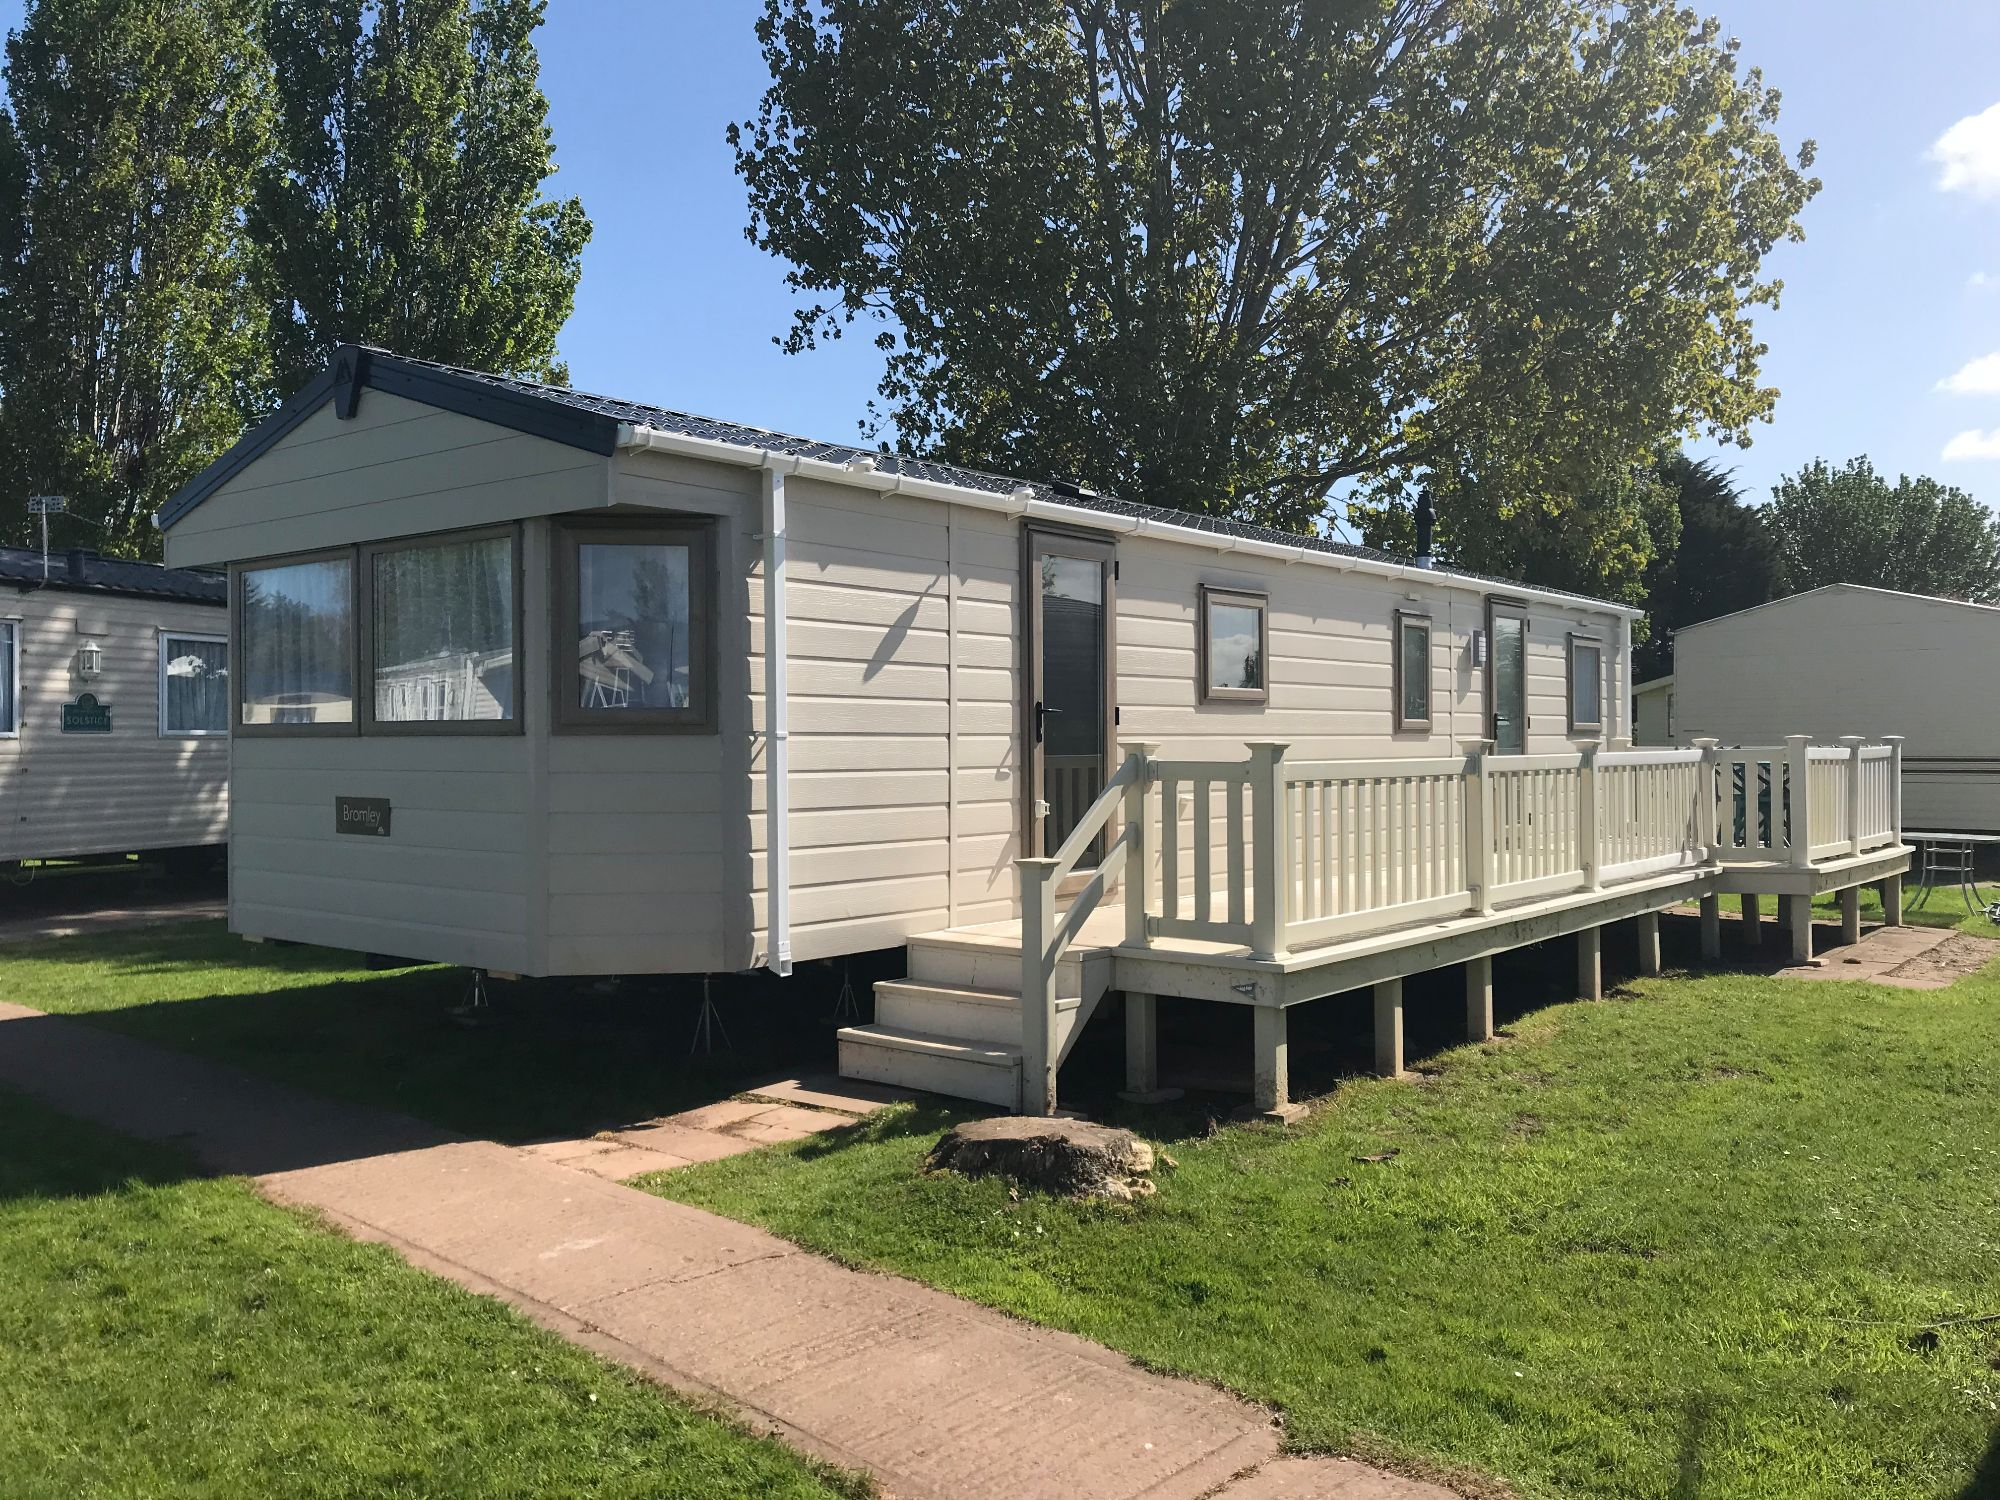 Butlins Minehead 10 berth 4 bedroom caravan